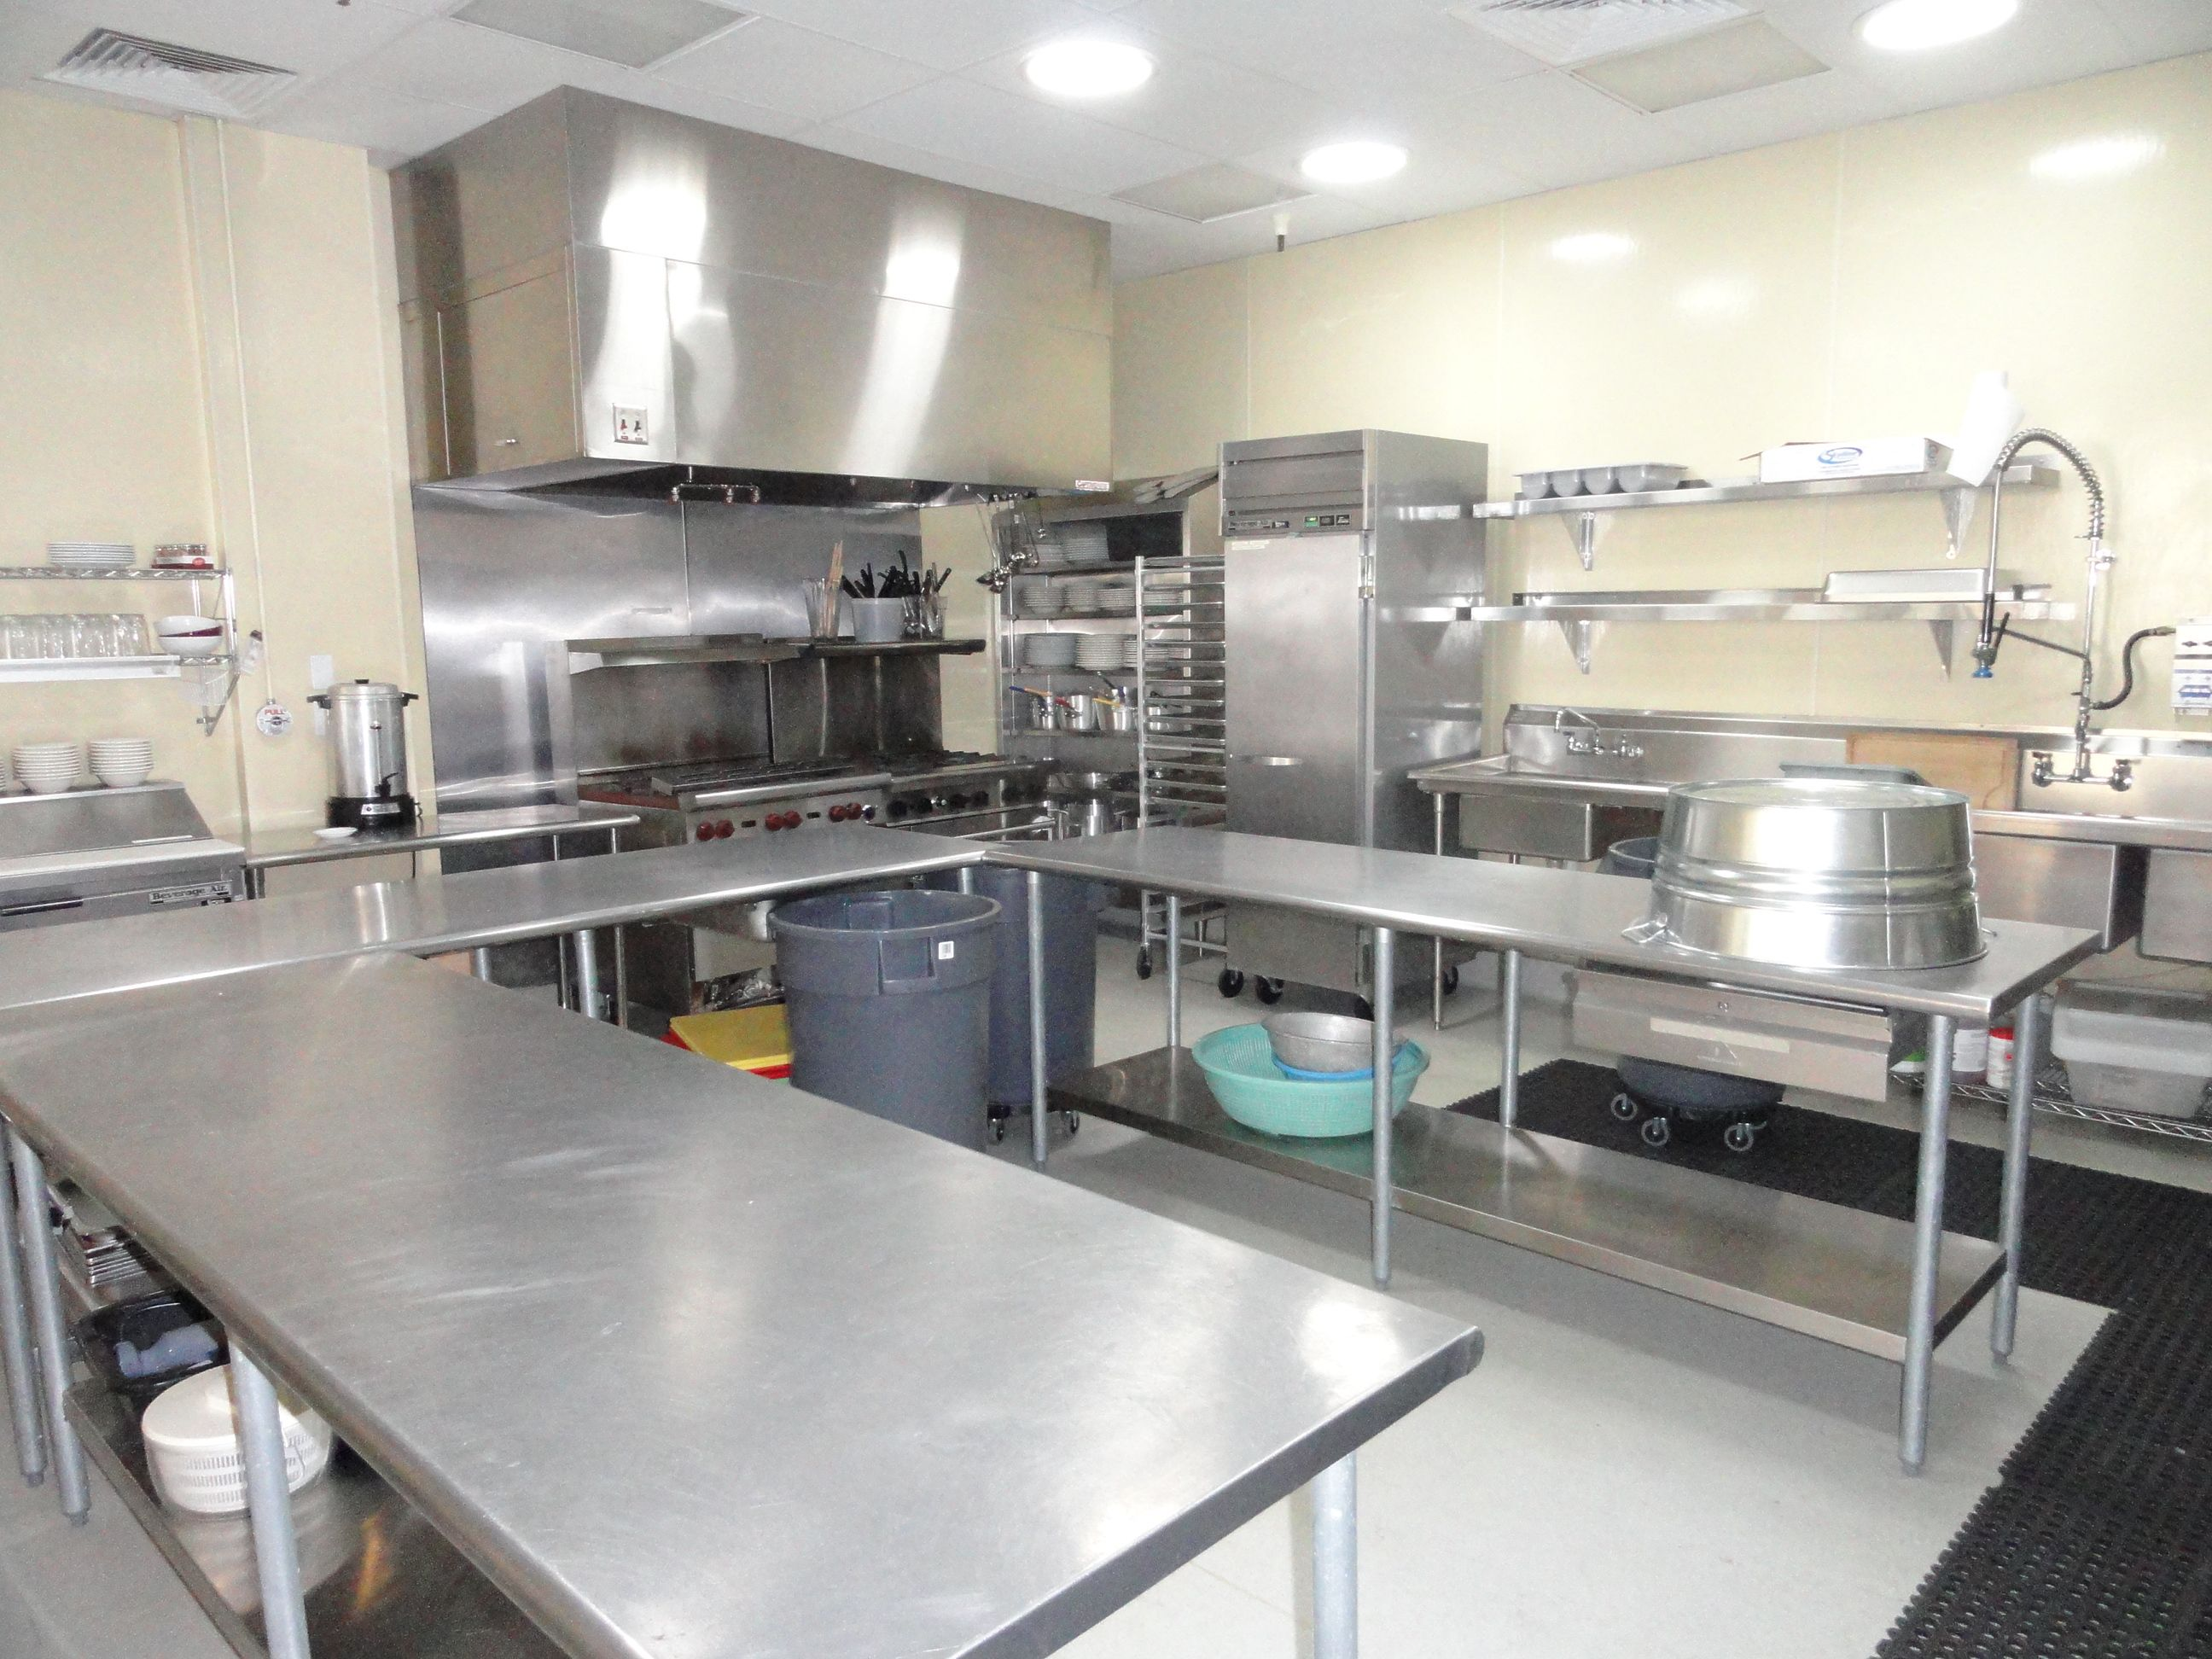 commercial kitchen flooring 9 Fascinating Small Commercial Kitchen Pic Ideas